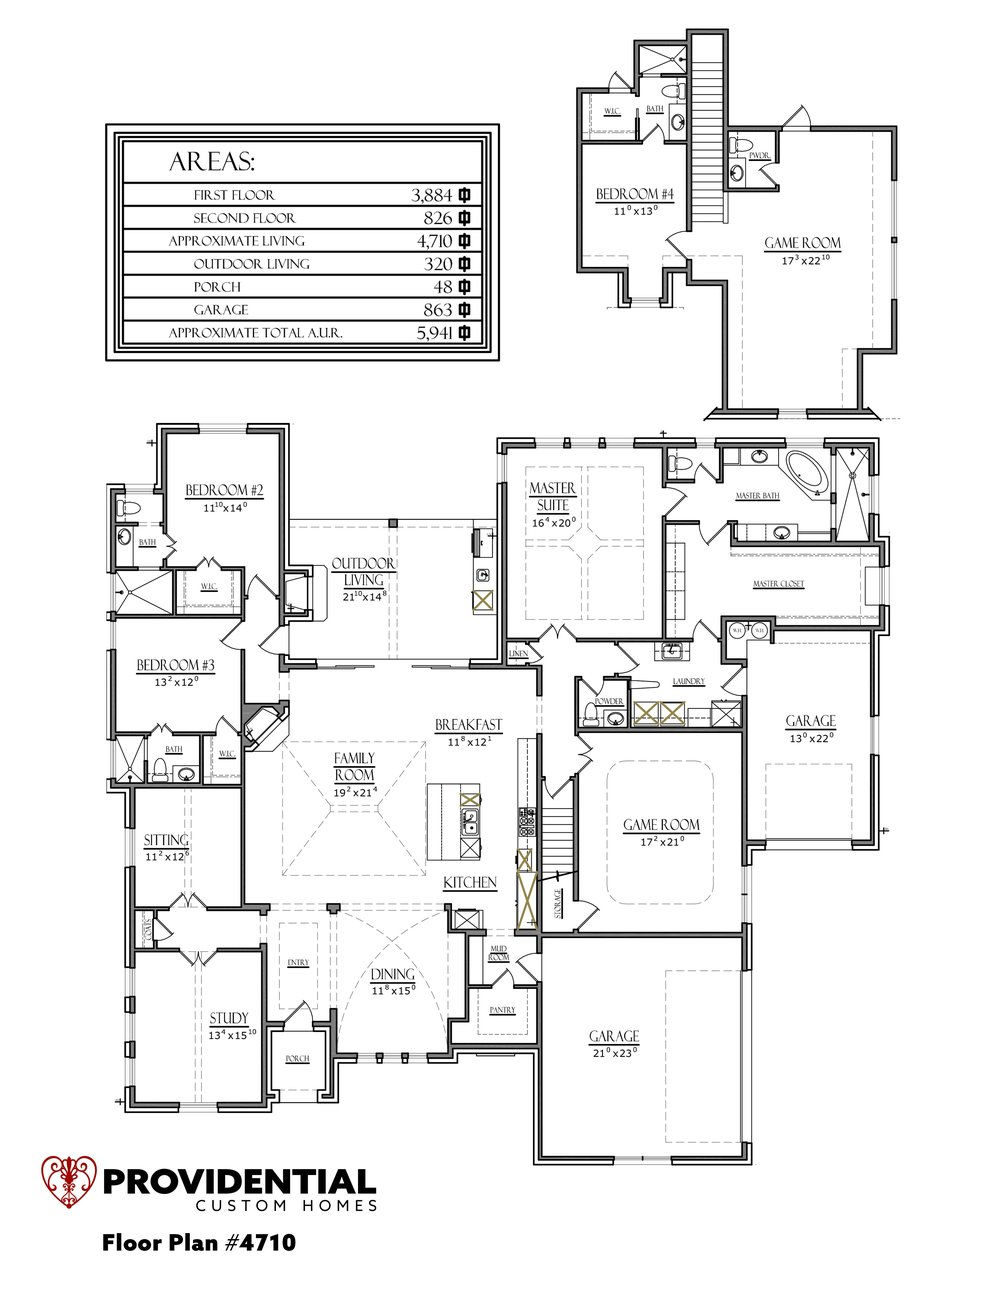 The FLOOR PLAN #4710.jpg